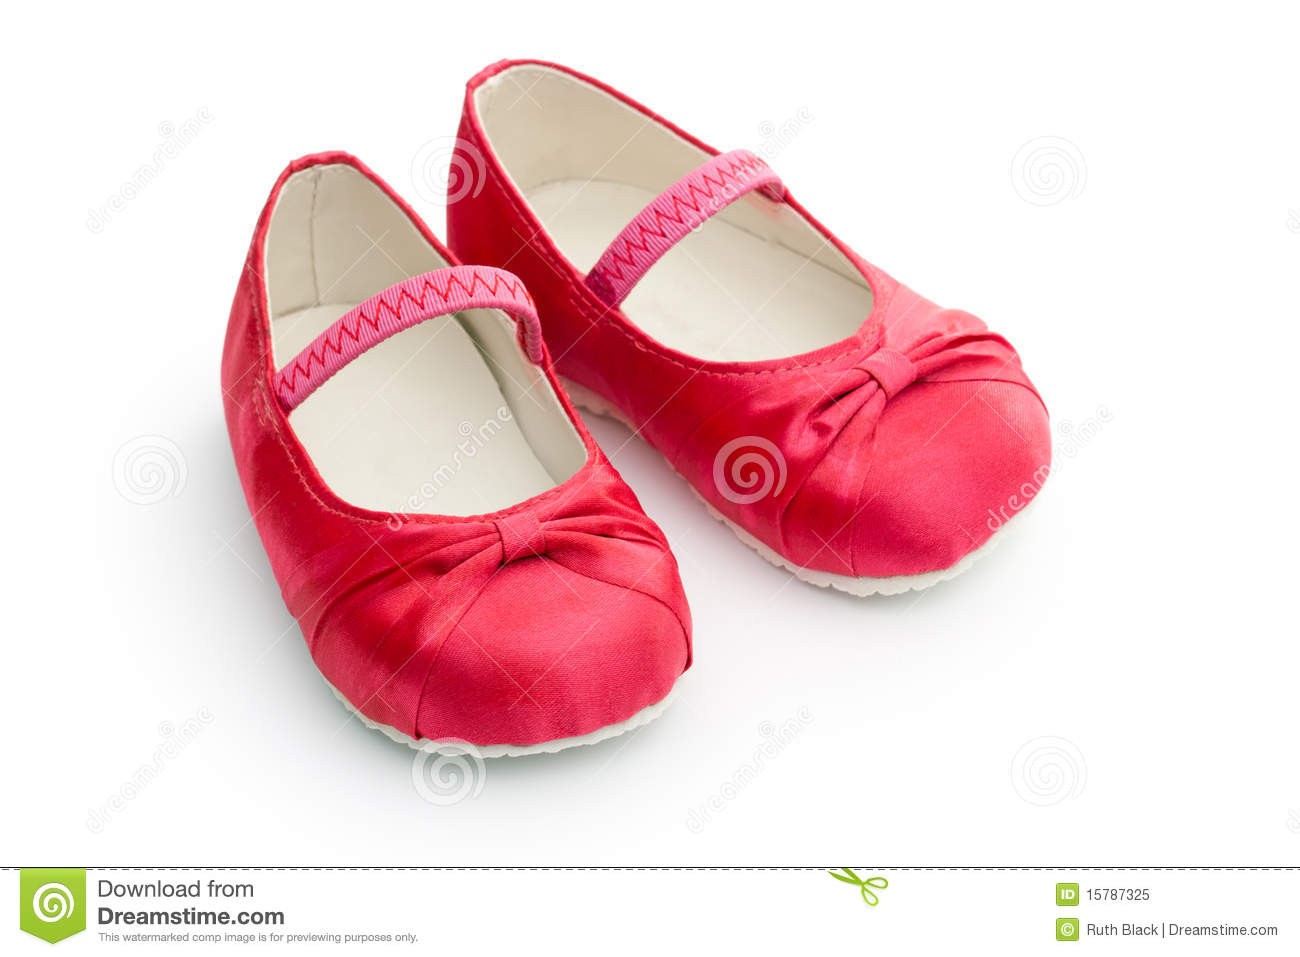 Red Baby Shoes Royalty Free Stock Photo - Image: 15787325